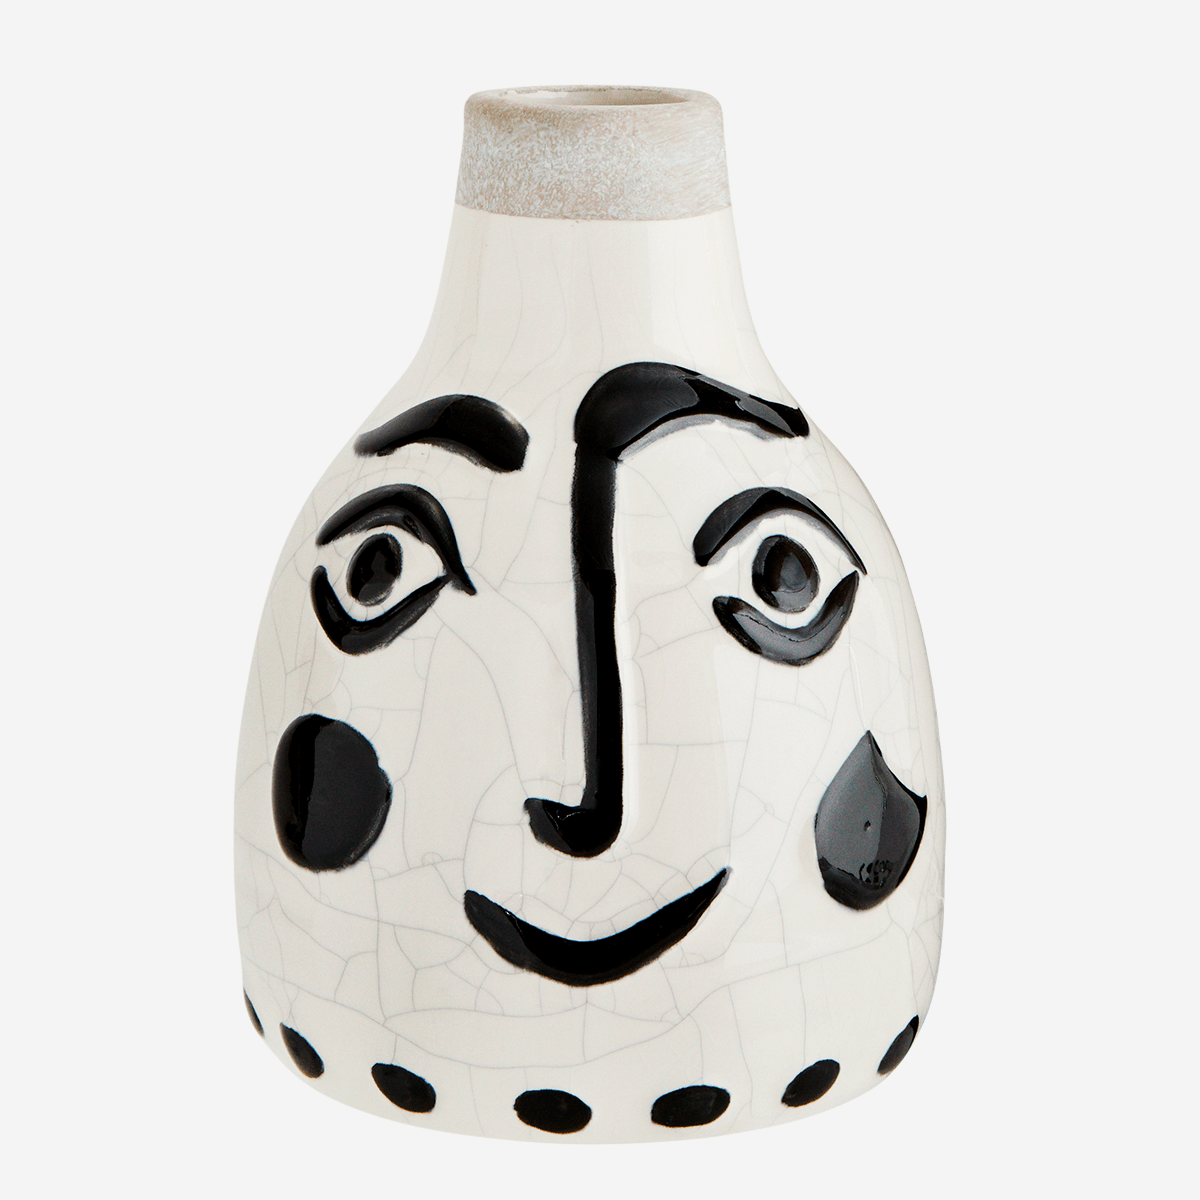 Ceramic Vase with Painted Smiley Face Large